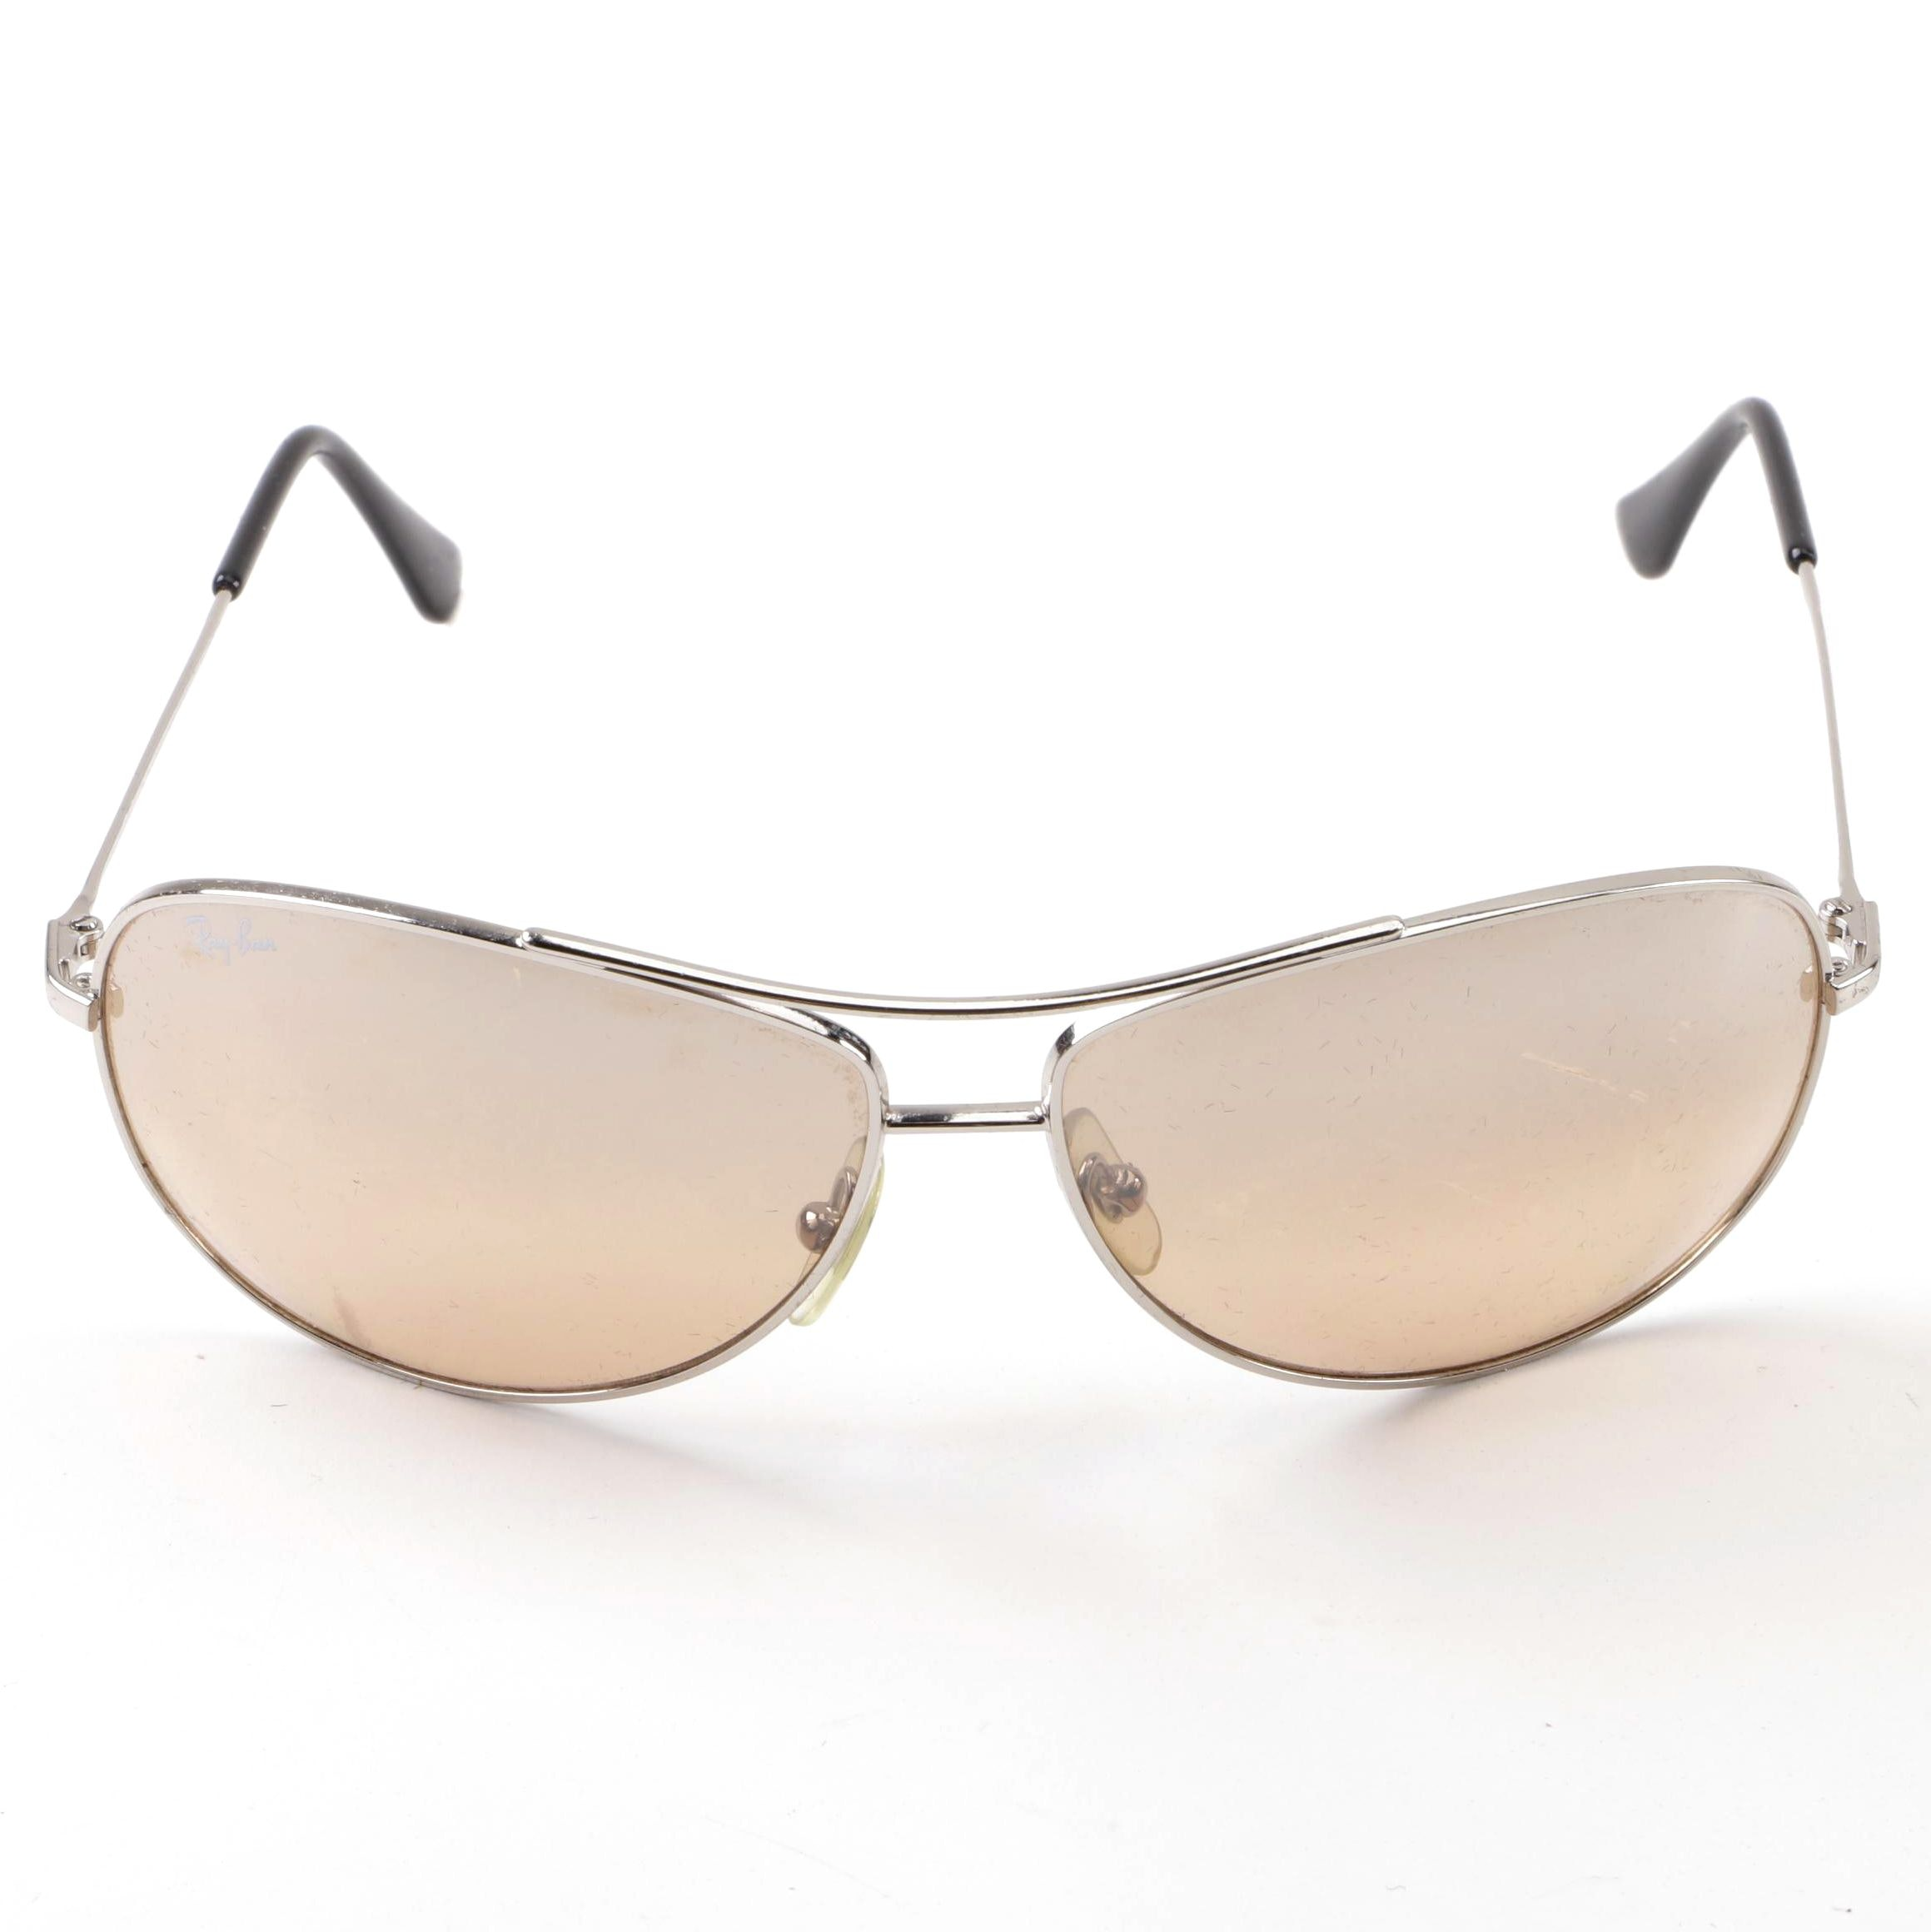 Ray-Ban RB 3293 Aviator Sunglasses with Case